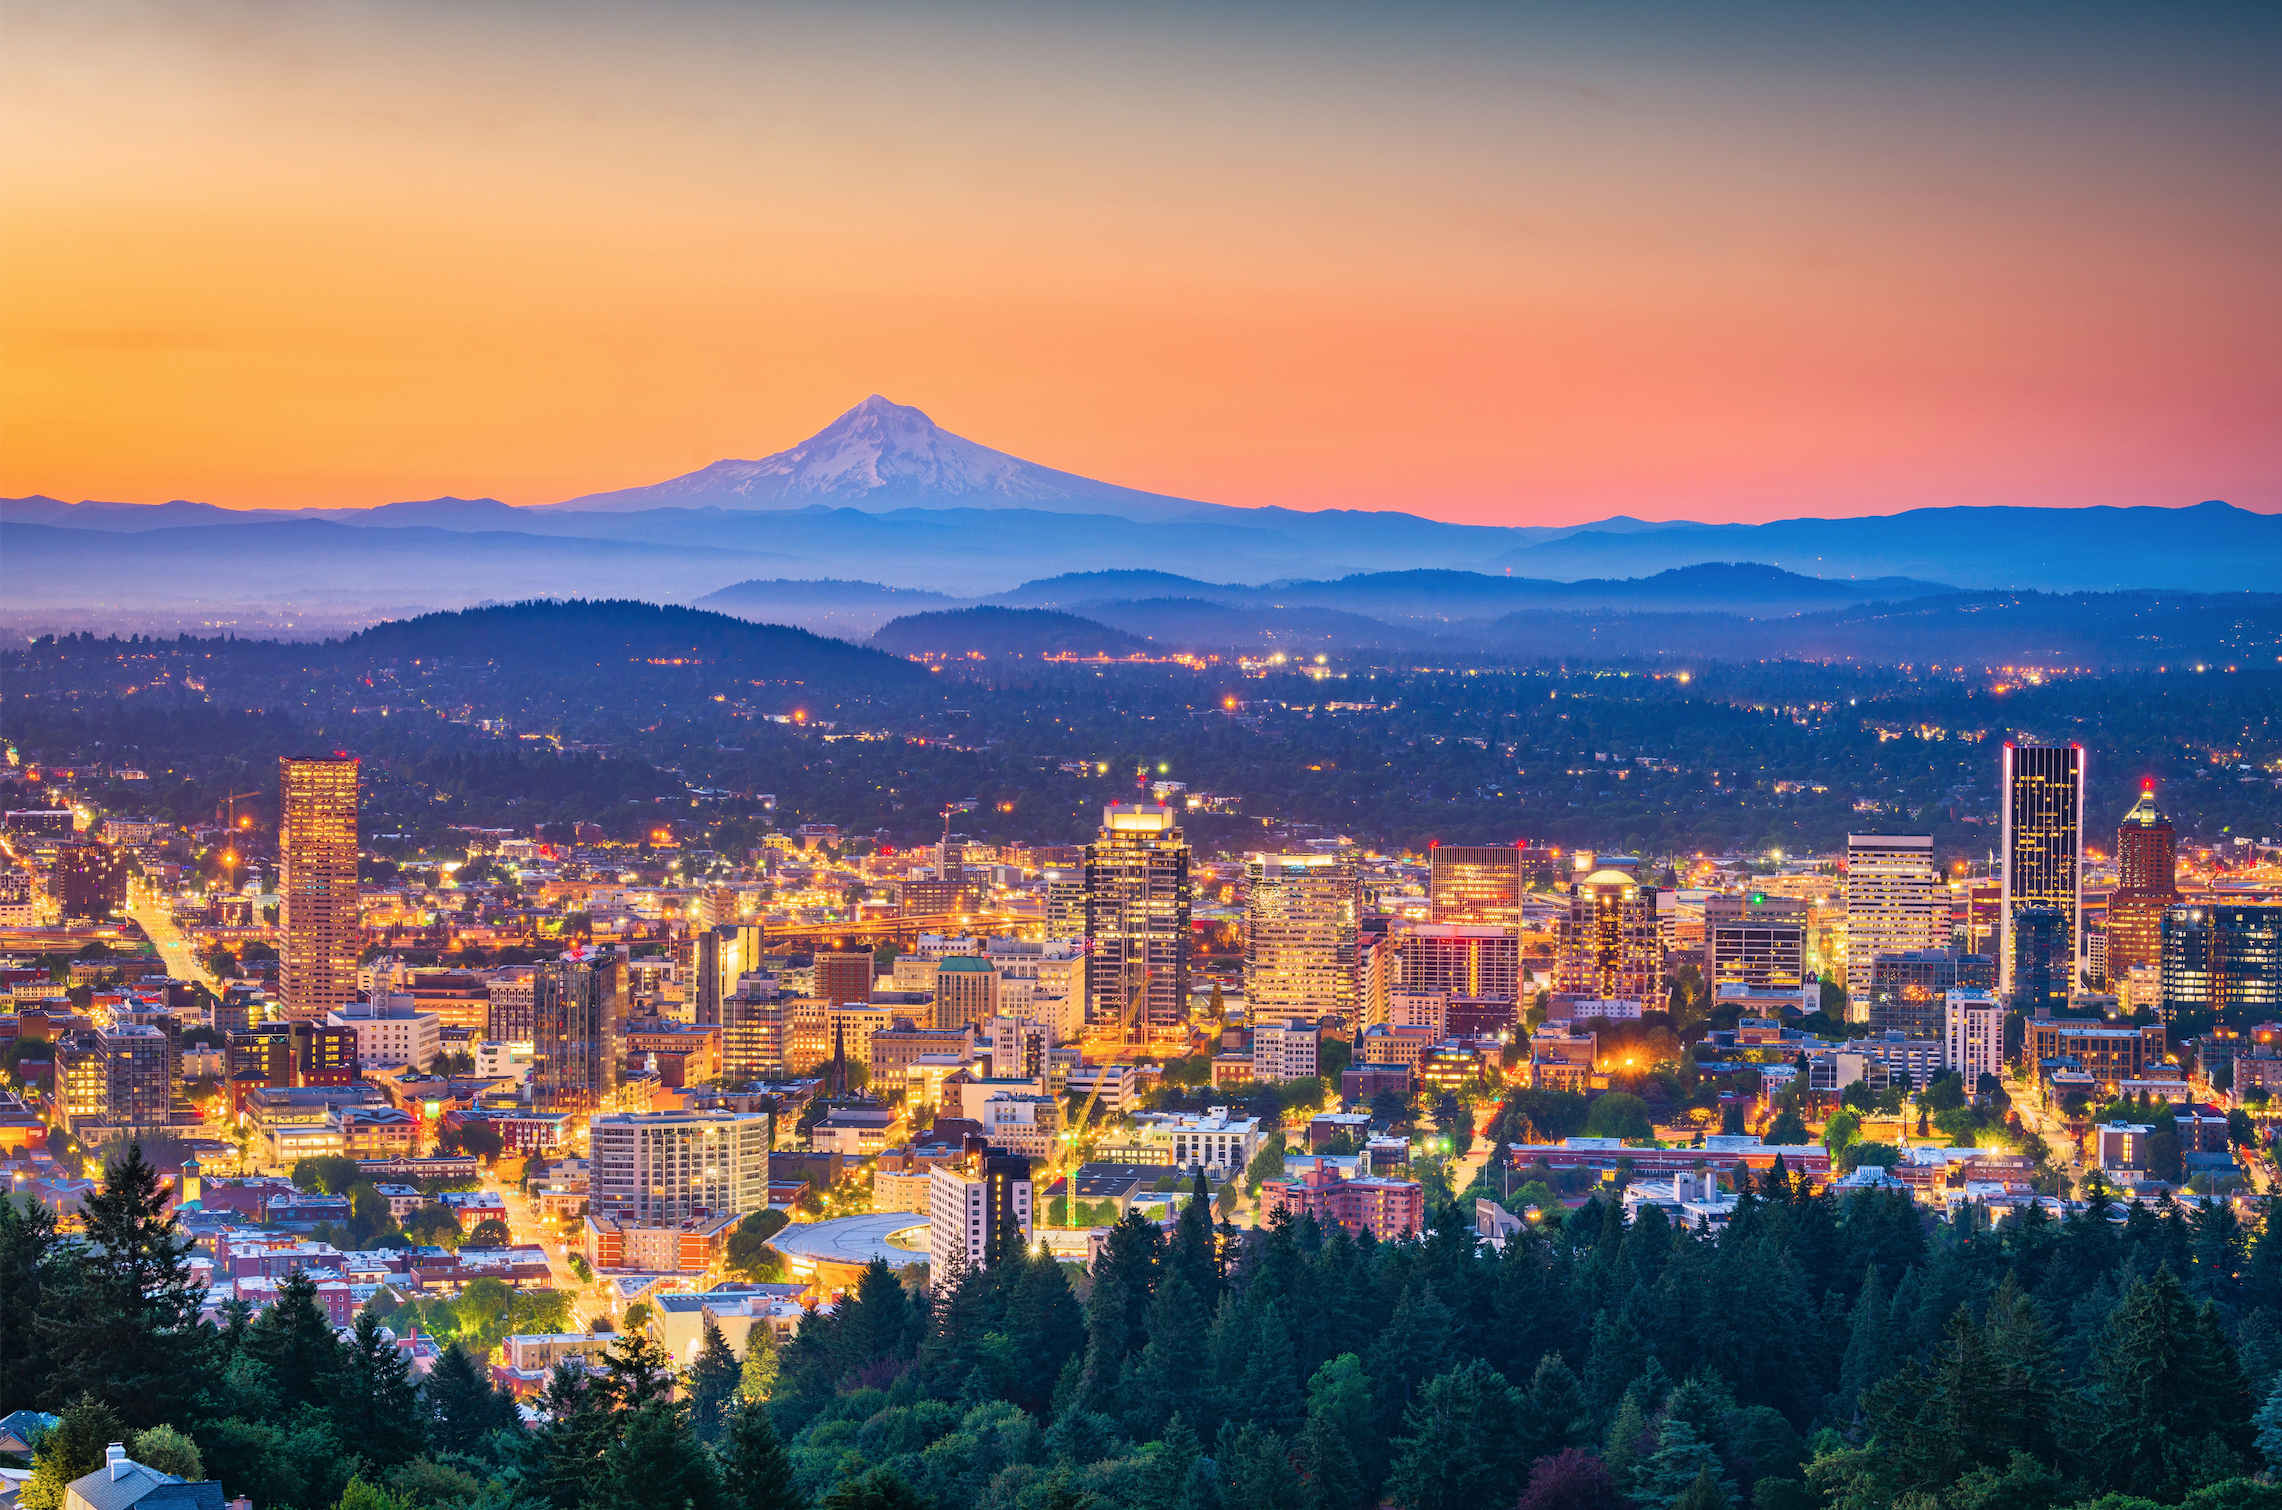 A view of downtown Portland, Oregon lit up by lights at dusk.